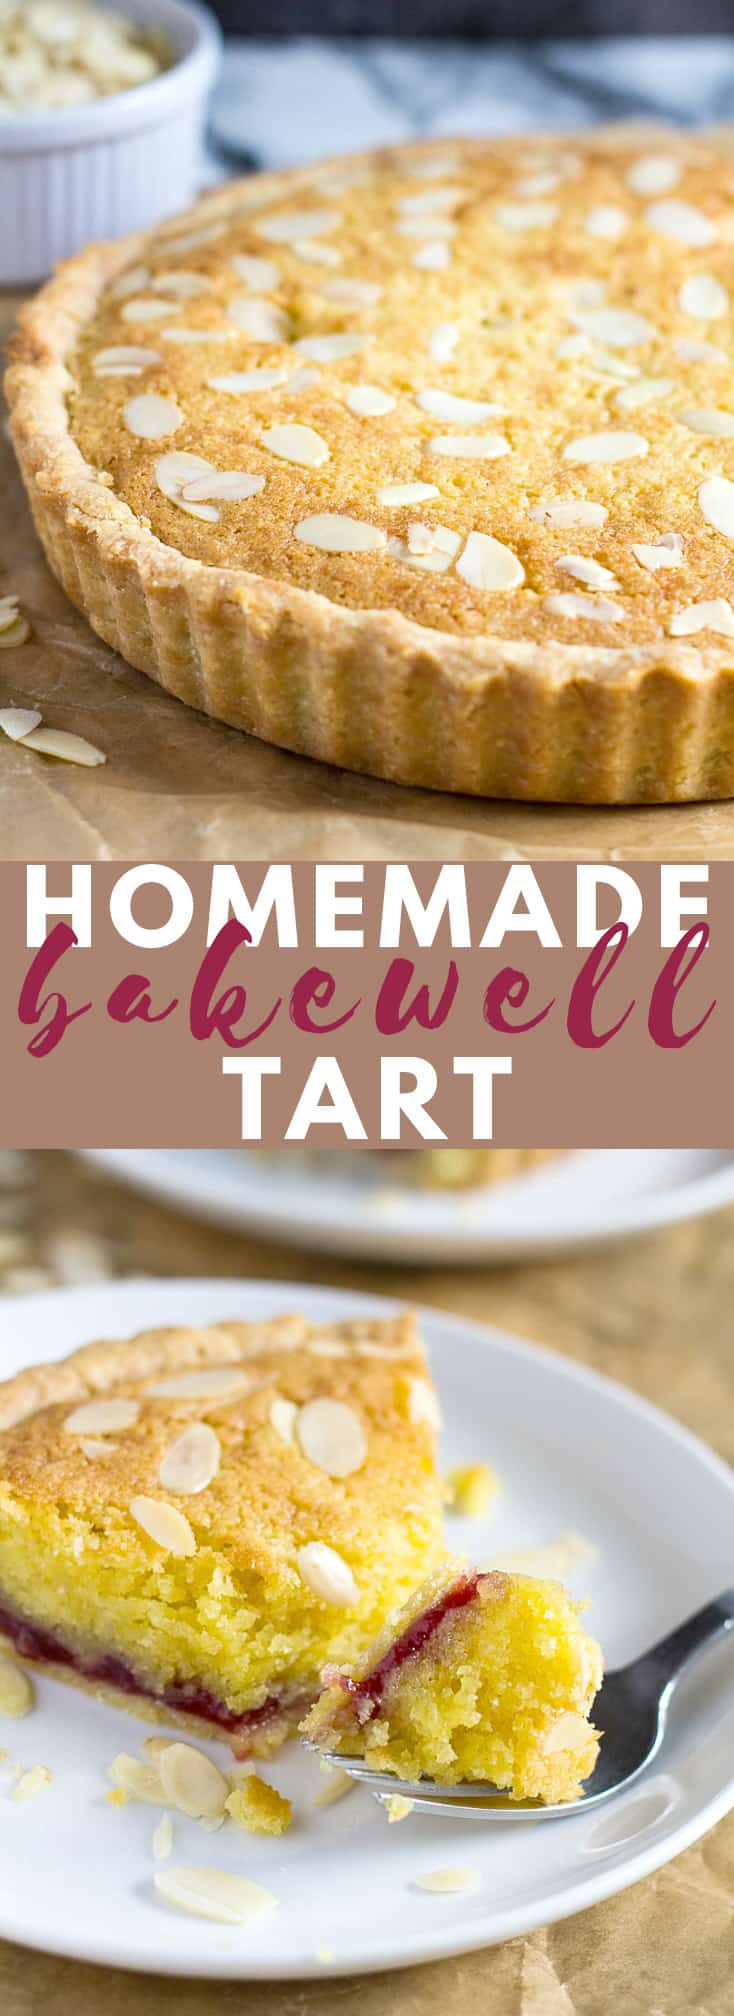 Bakewell Tart – A sweet shortcrust pastry filled with raspberry jam, almond flavoured sponge, and topped with flaked almonds!